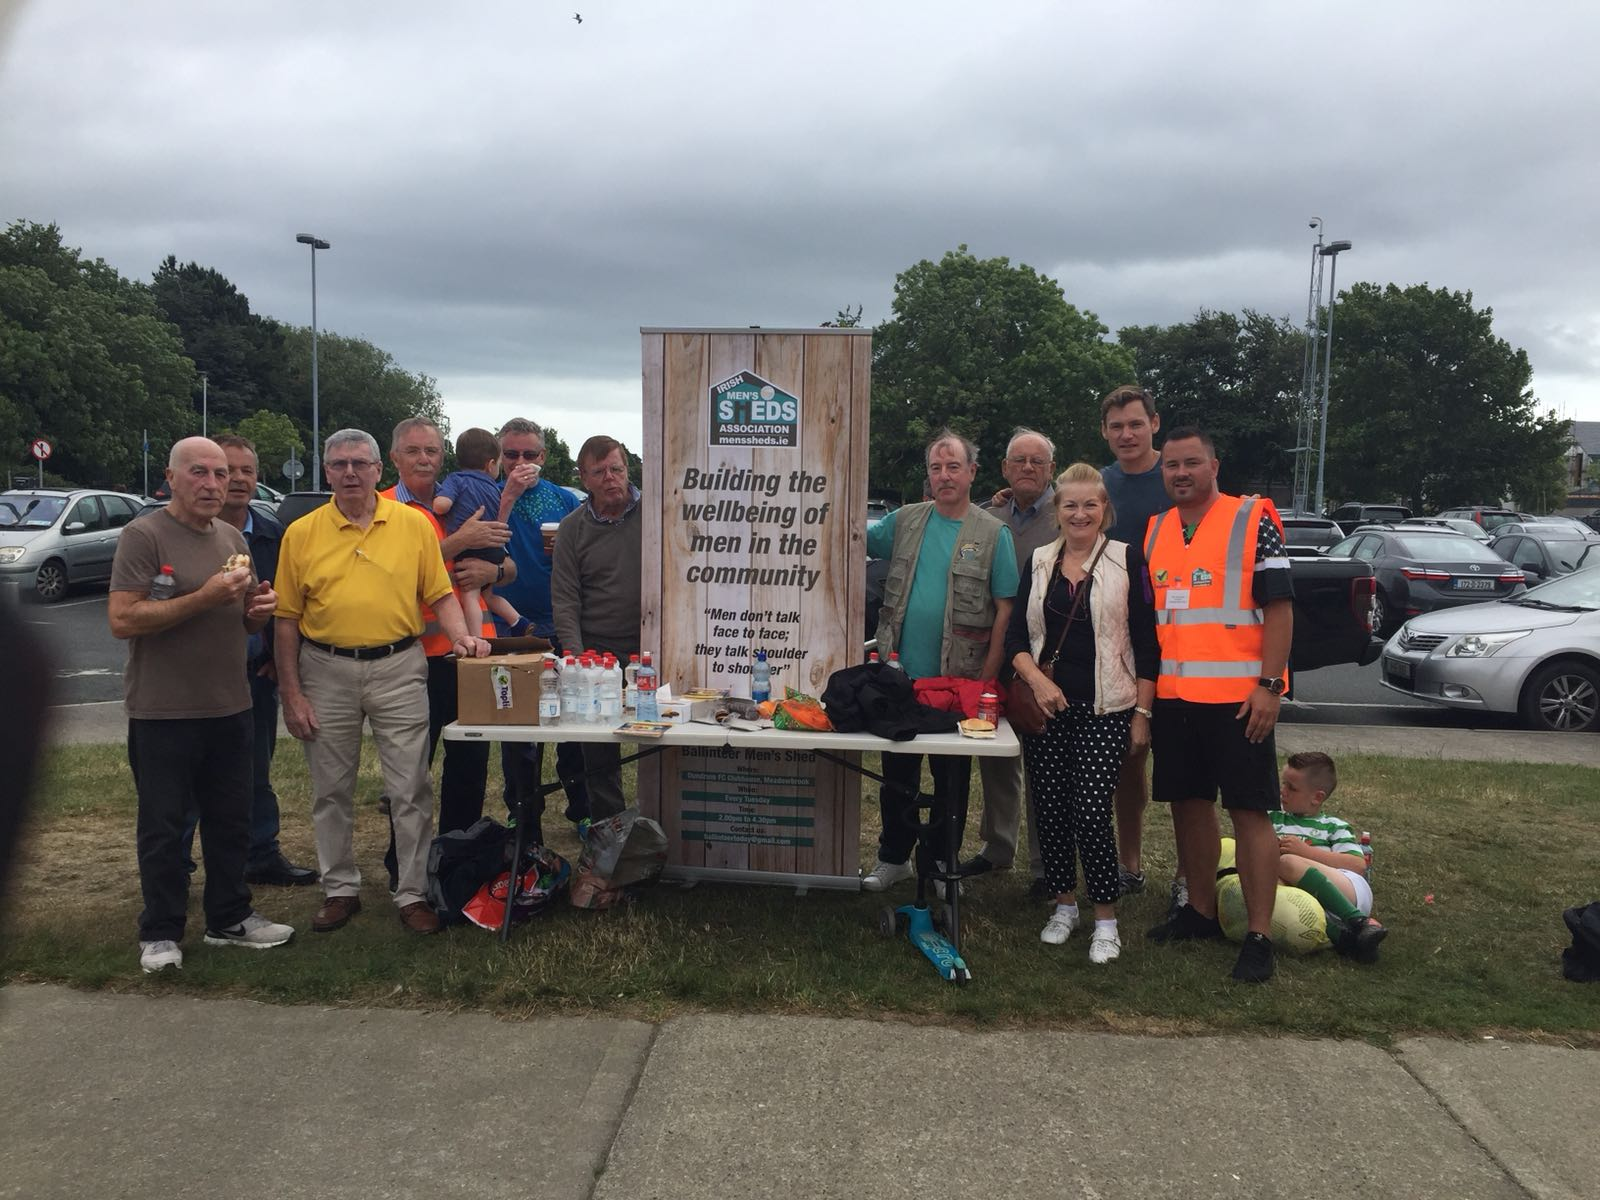 BARA and Men's Shed members celebrate the start of The Dundrum Festival with David Gillick - June 2018